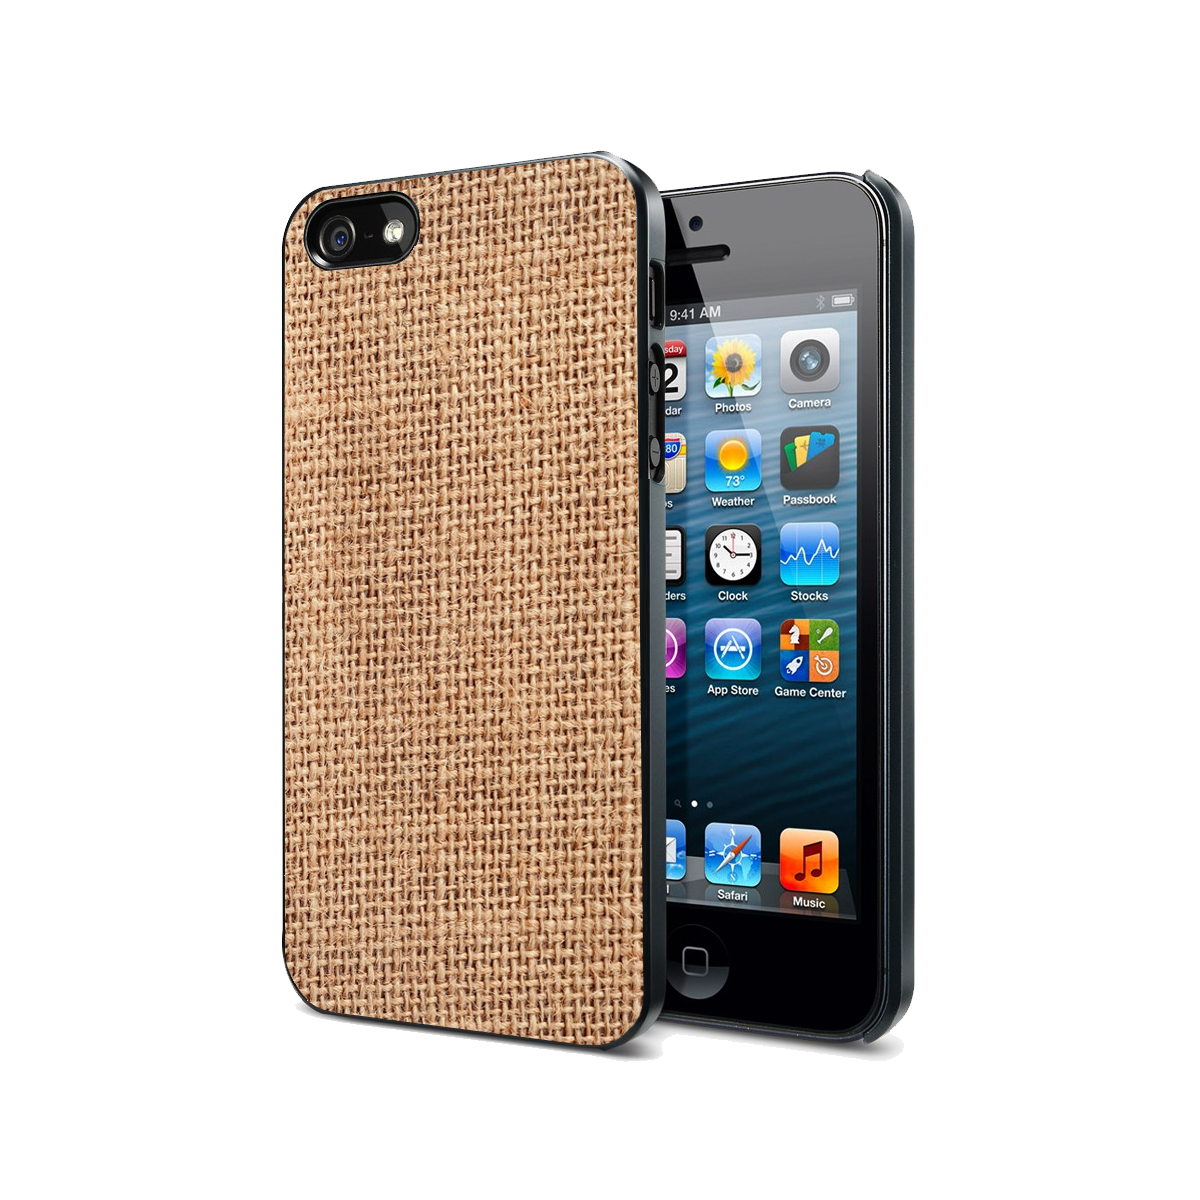 KuzmarK Black Cover Case fits iPhone SE & iPhone 5 - Burlap